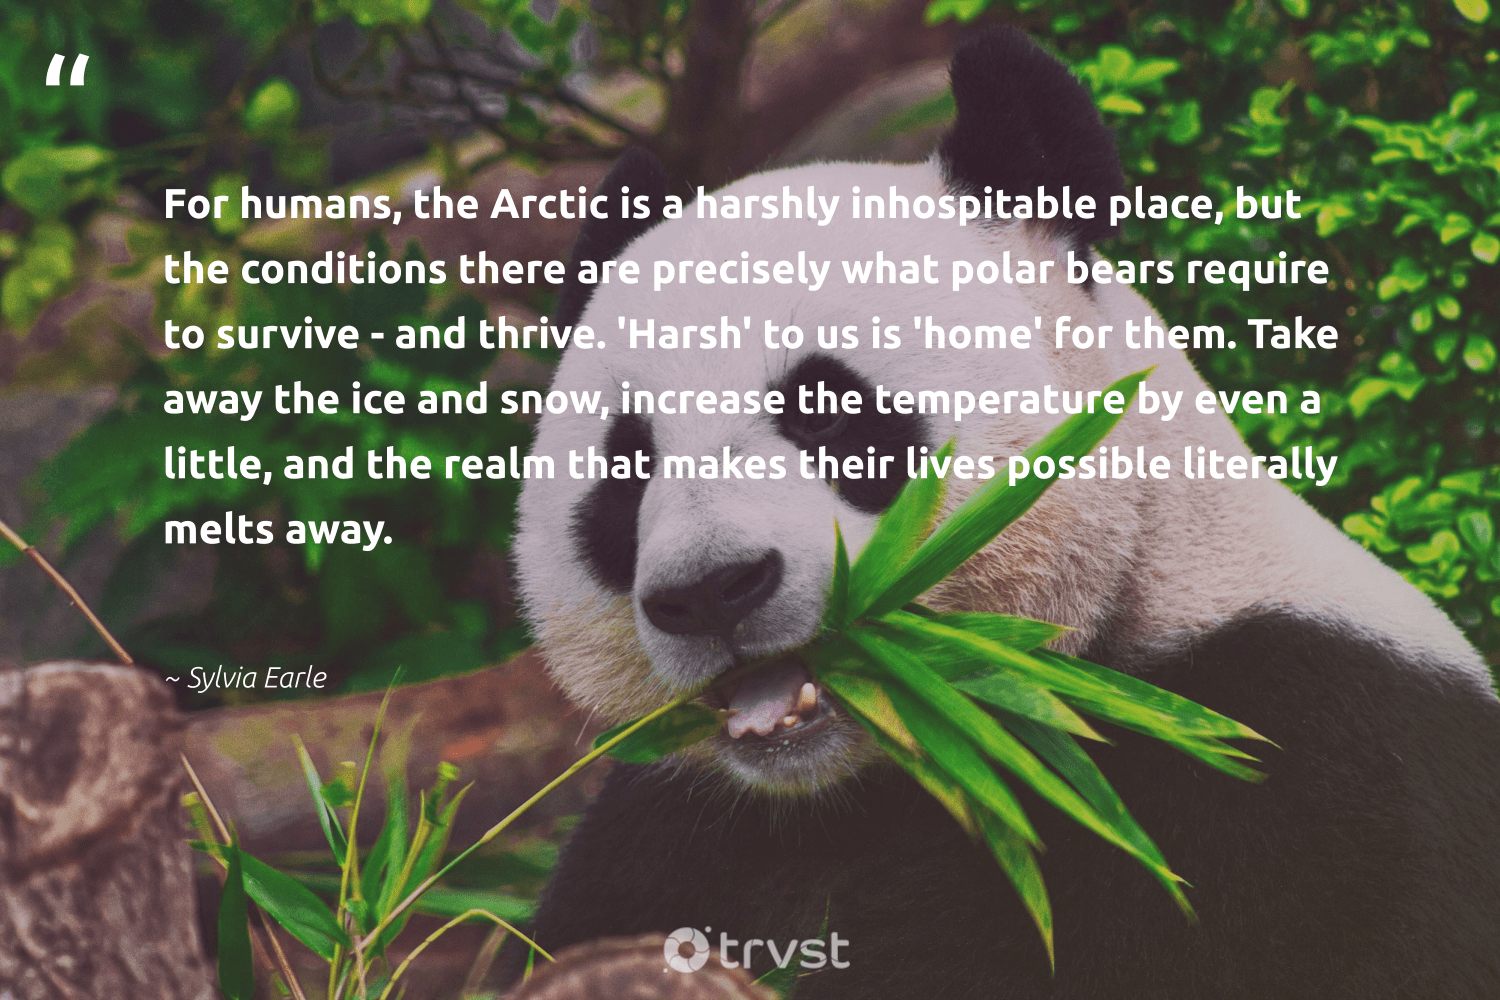 """""""For humans, the Arctic is a harshly inhospitable place, but the conditions there are precisely what polar bears require to survive - and thrive. 'Harsh' to us is 'home' for them. Take away the ice and snow, increase the temperature by even a little, and the realm that makes their lives possible literally melts away.""""  - Sylvia Earle #trvst #quotes #arctic #snow #bears #weather #conservation #wildernessnation #socialchange #extremeweather #sustainability #eco"""